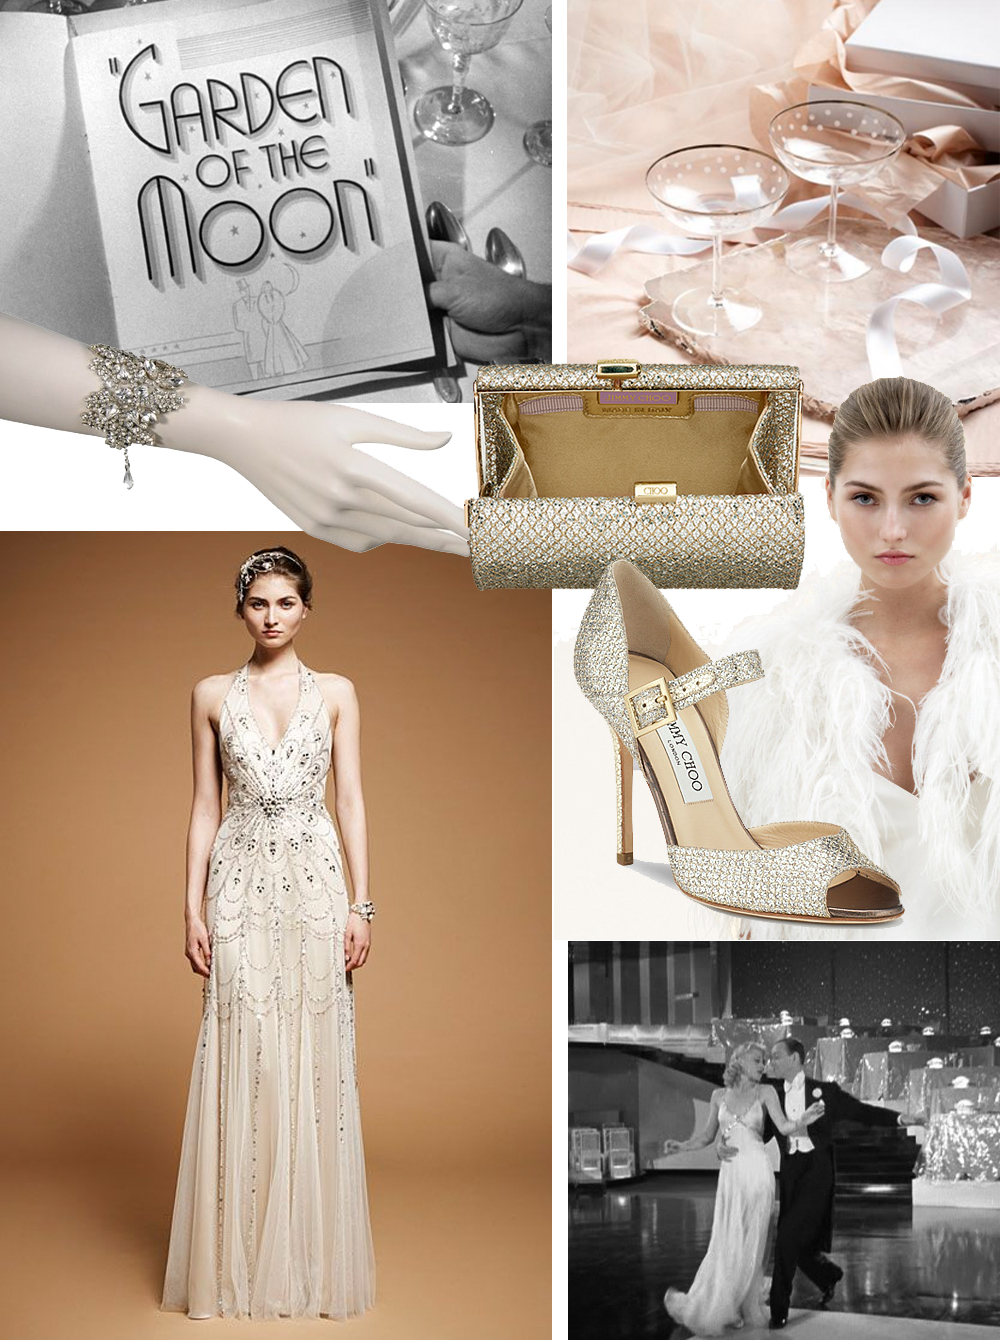 1930s-wedding-mood-board.jpg